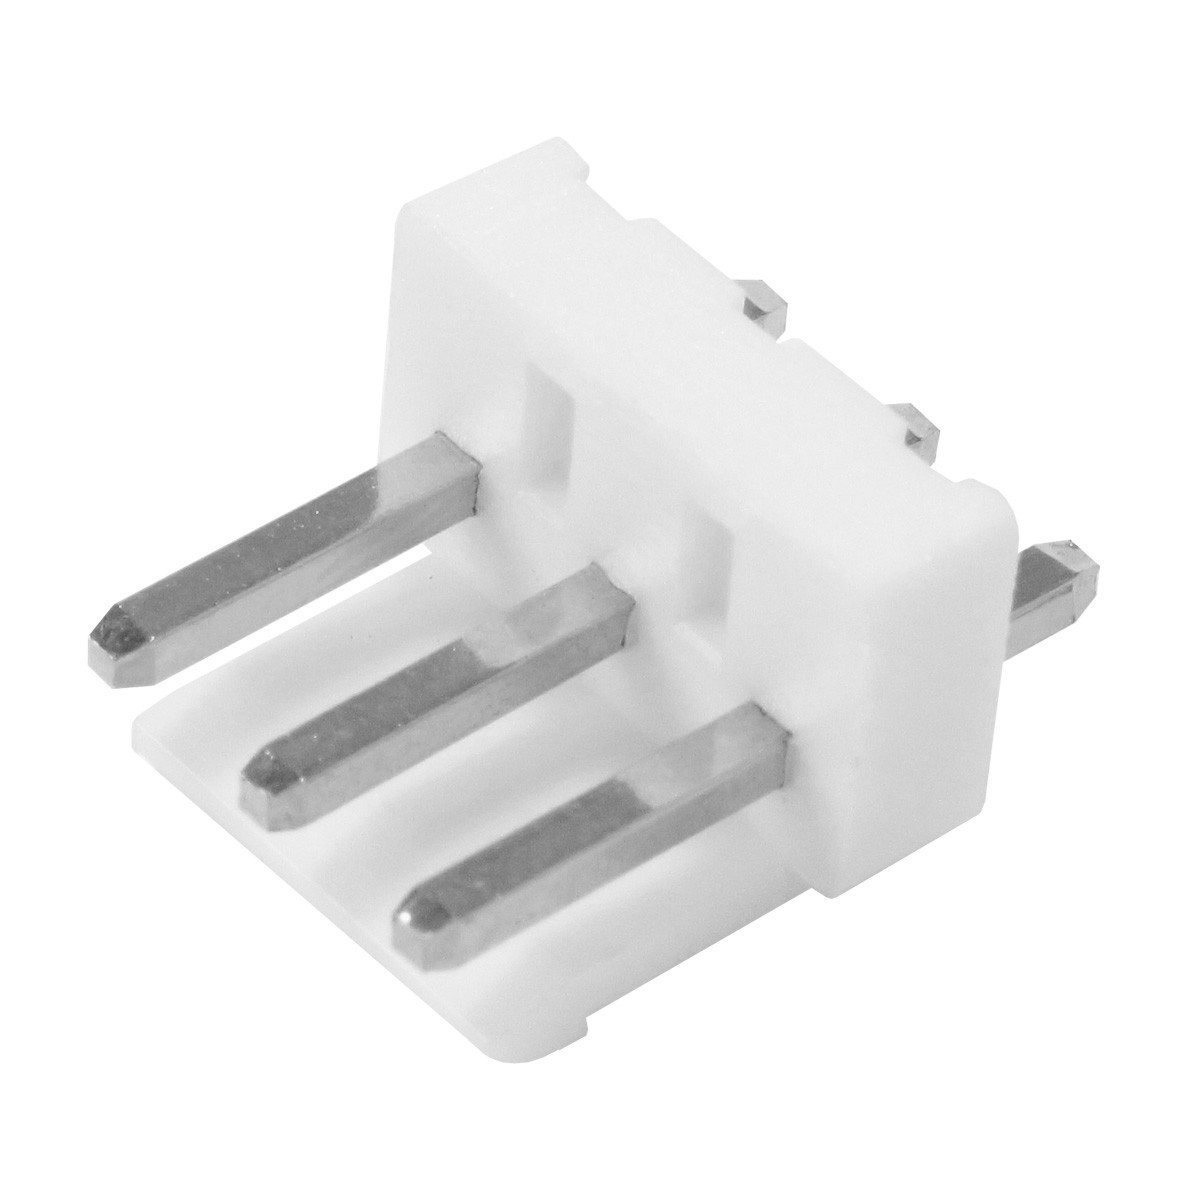 VH 3.96mm Male Socket 3 Channels White (Unit)